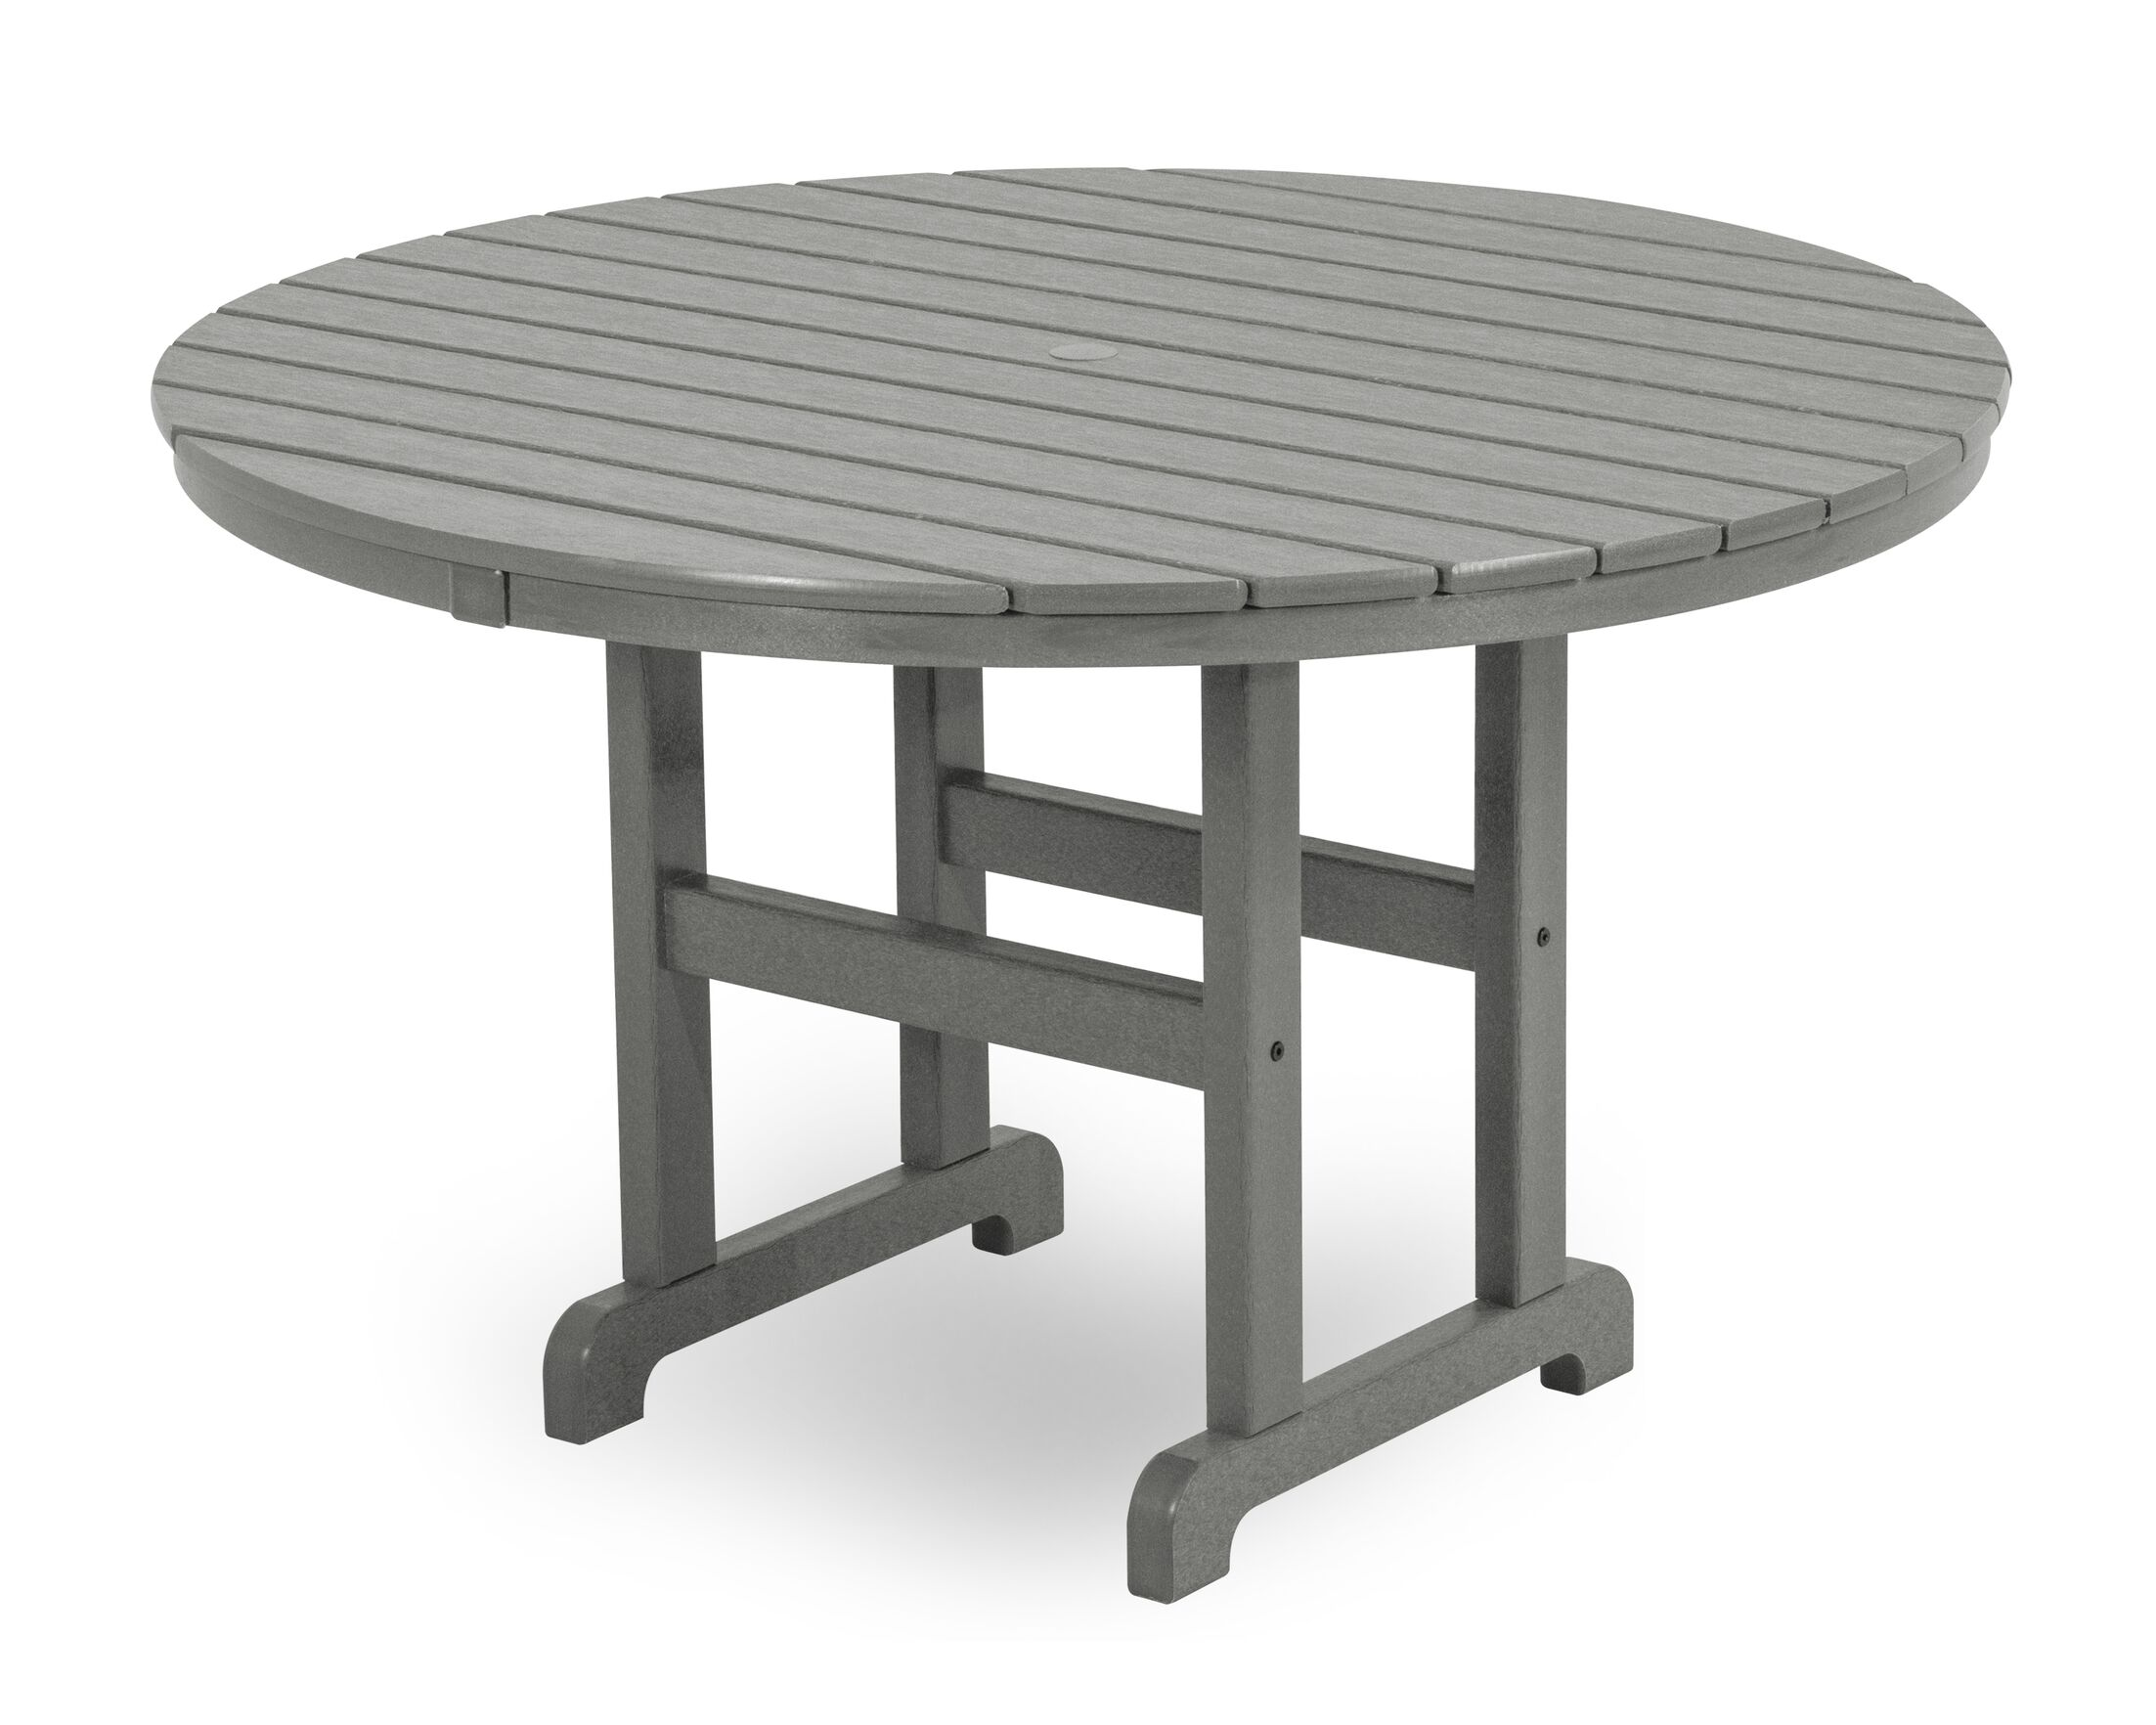 Round Dining Table Table Size: 48